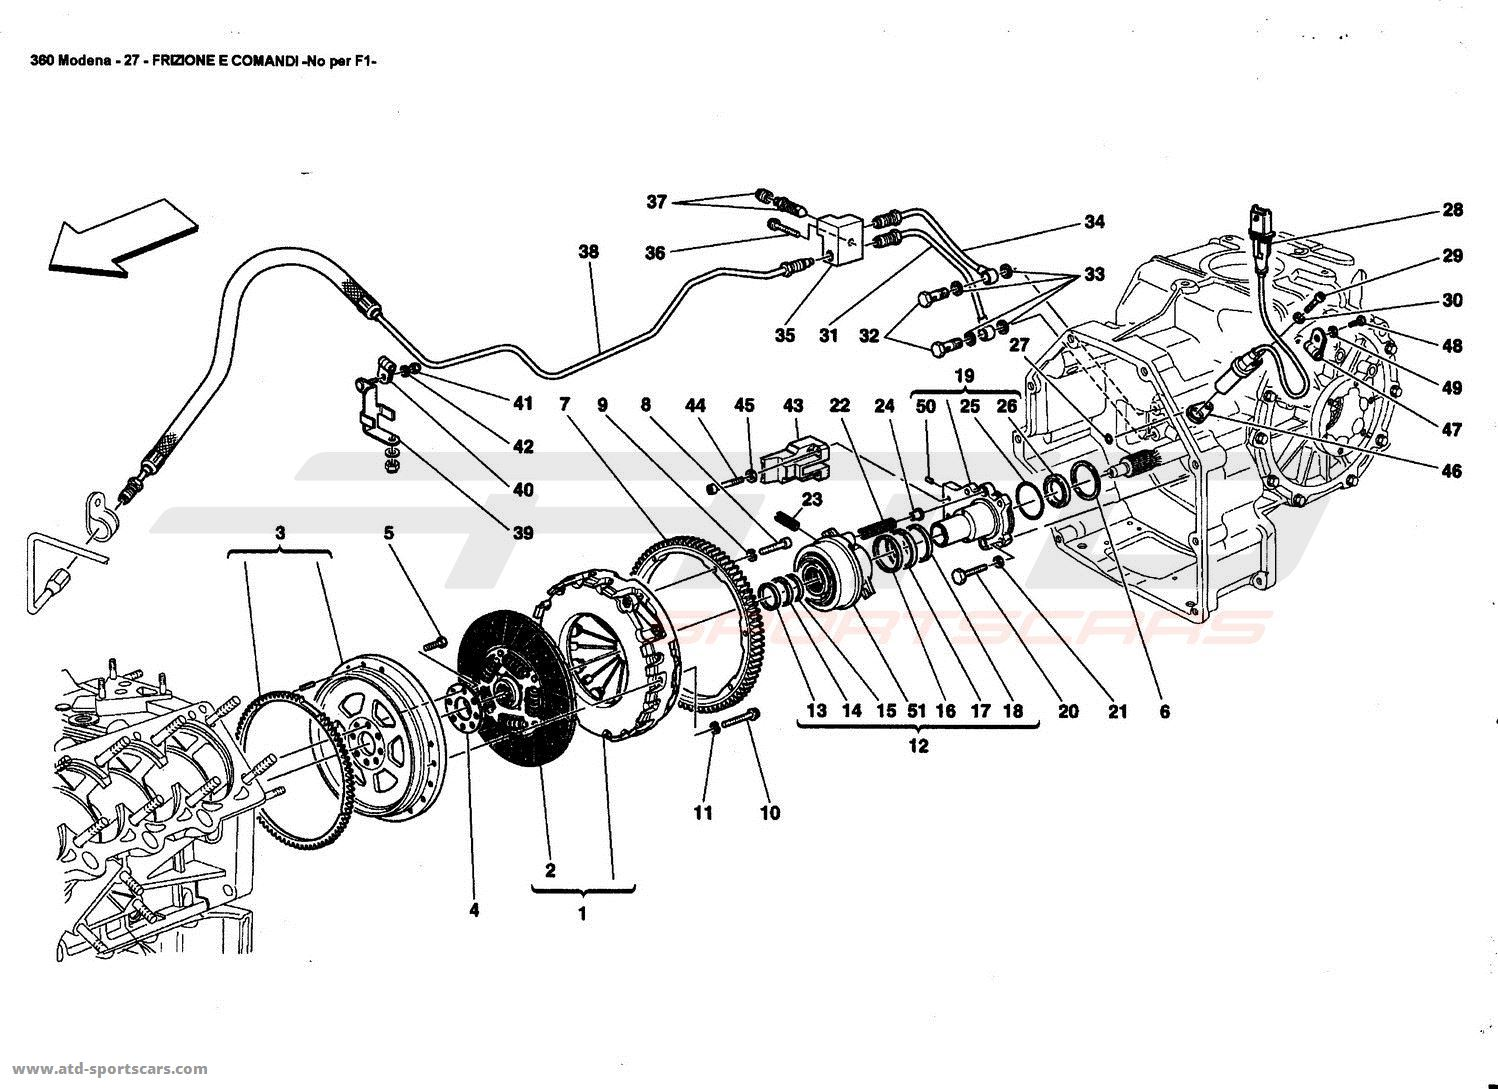 CLUTCH AND CONTROLS -Not for F1-